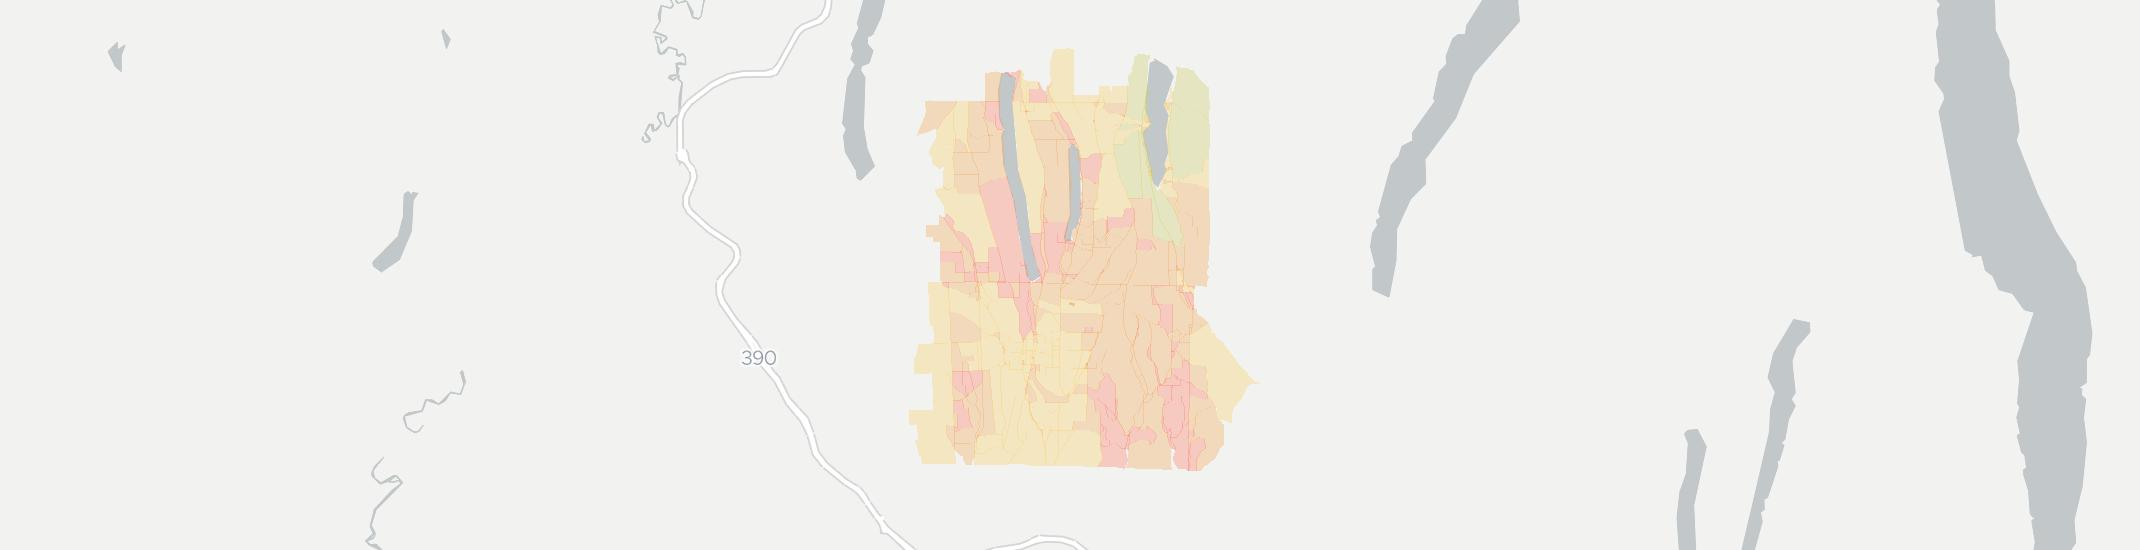 Springwater Internet Competition Map. Click for interactive map.